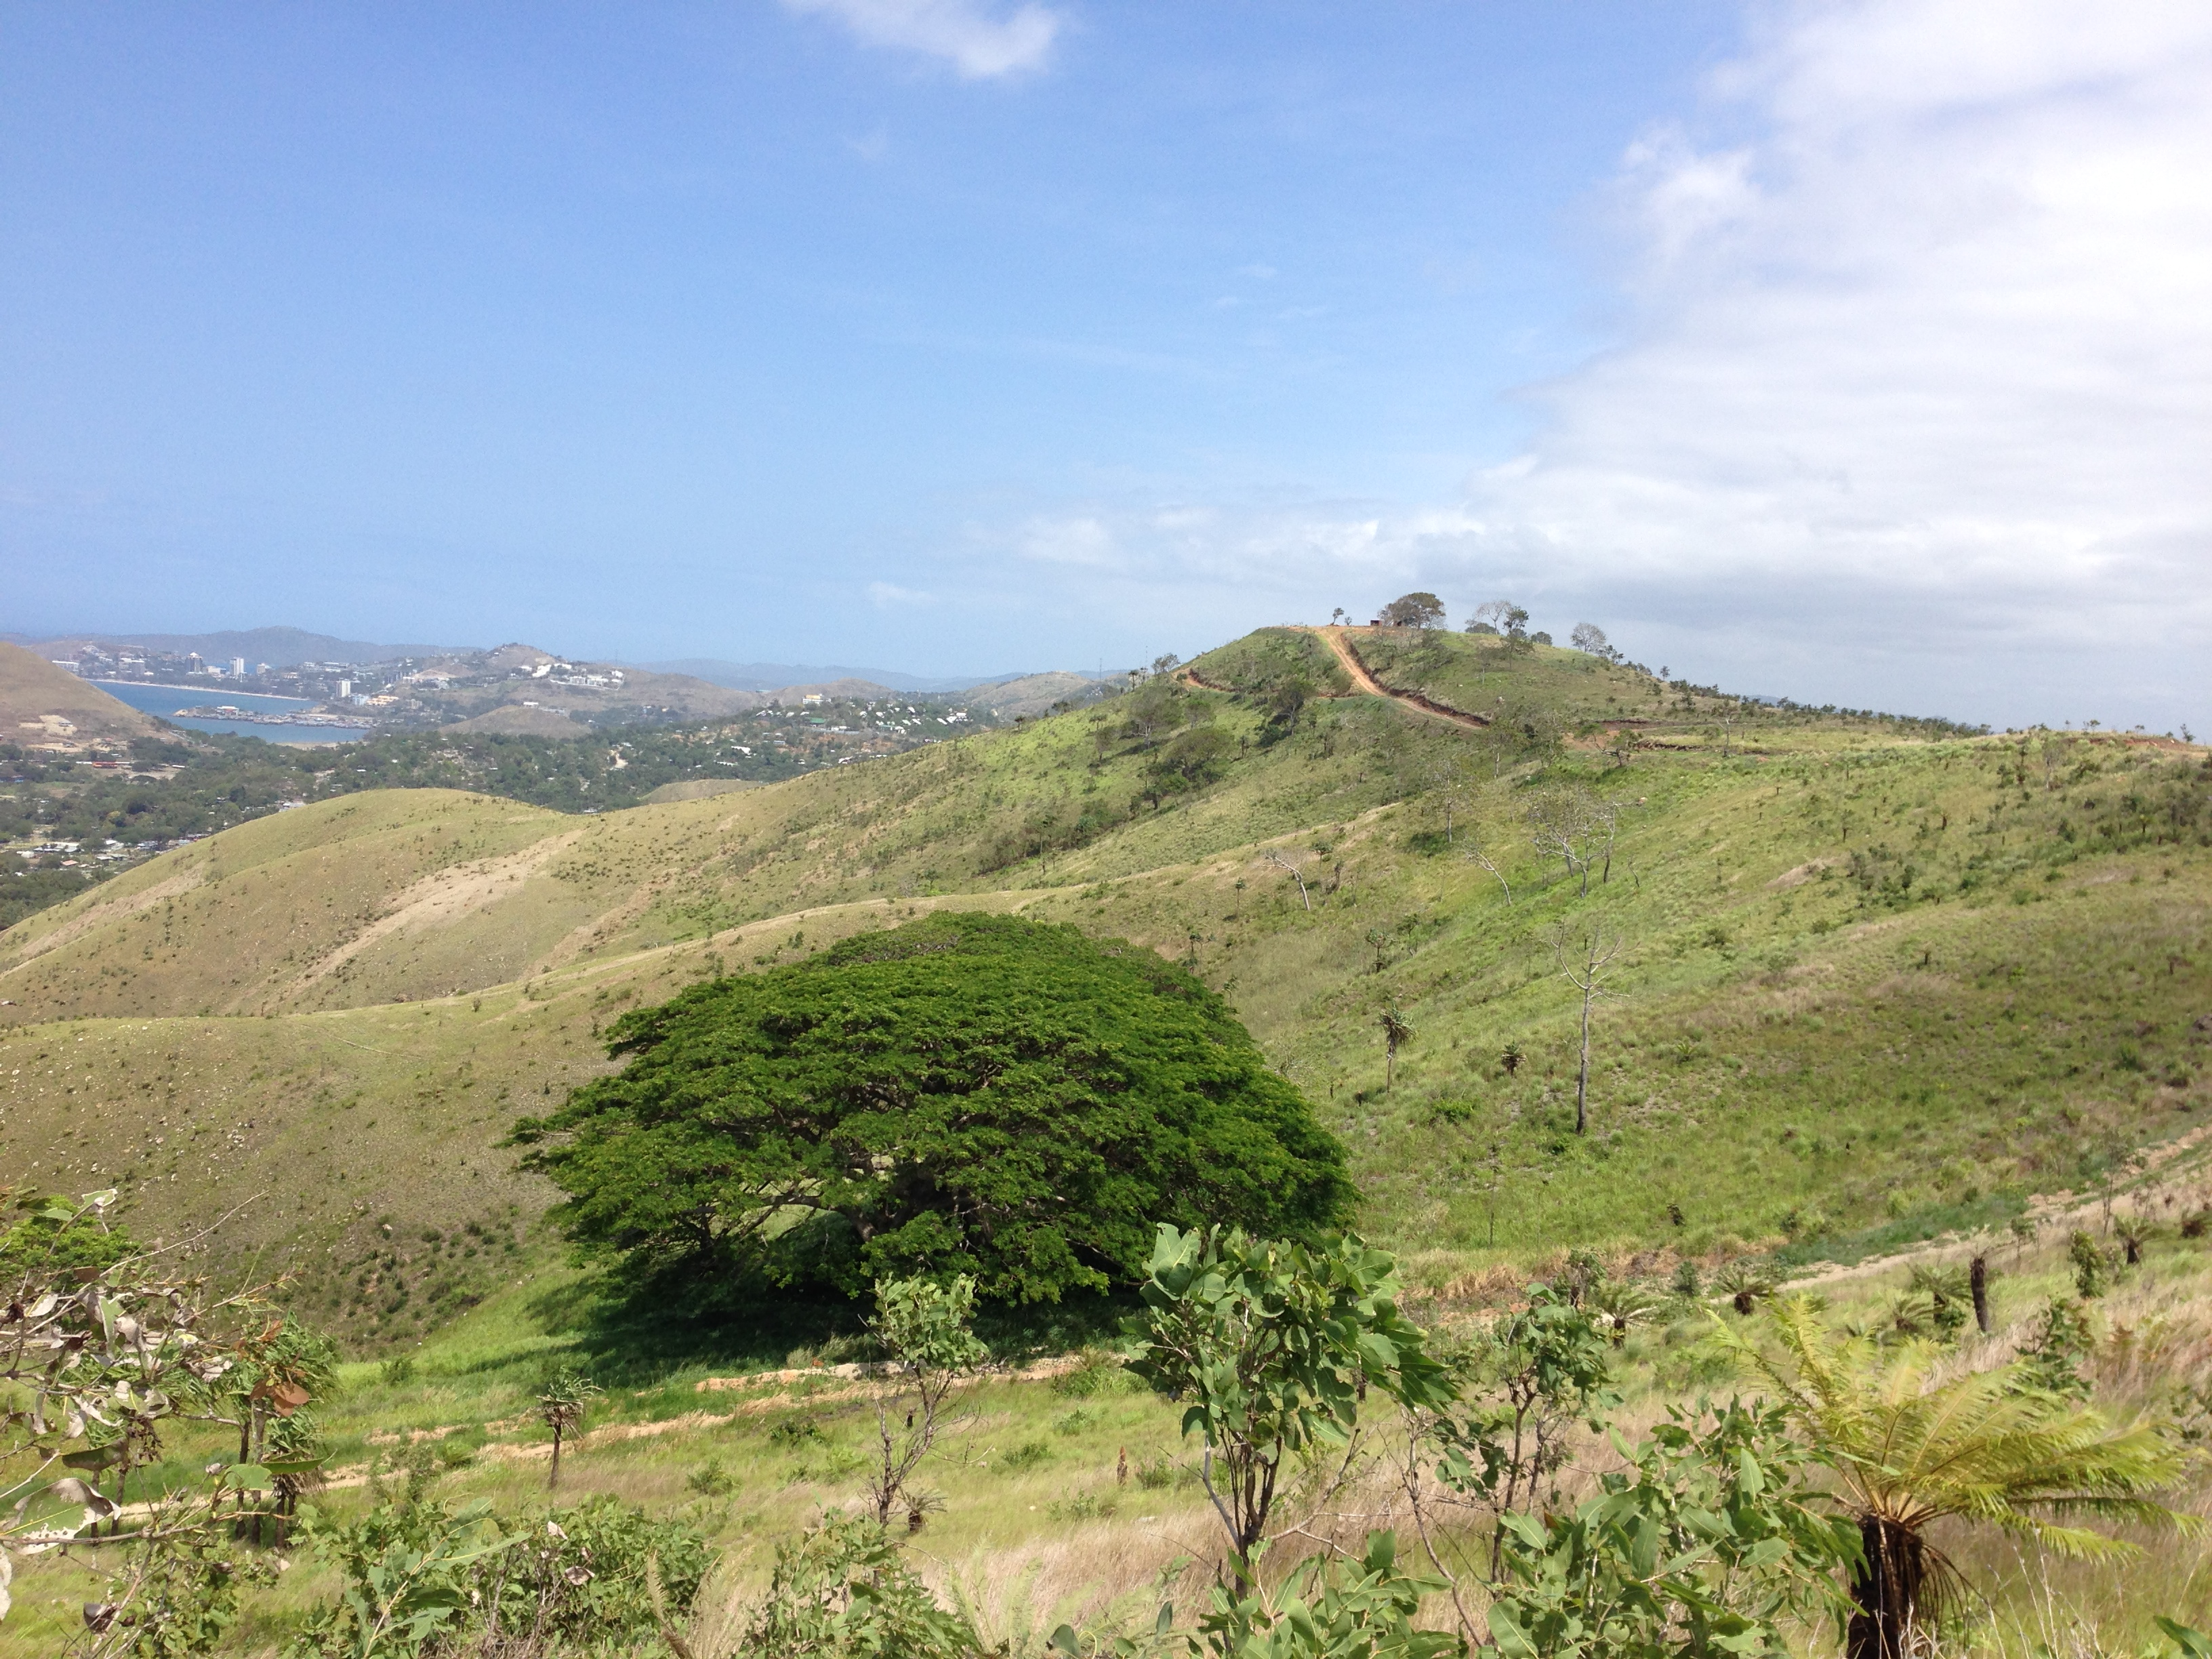 Settling as an expat in Port Moresby – a personal account